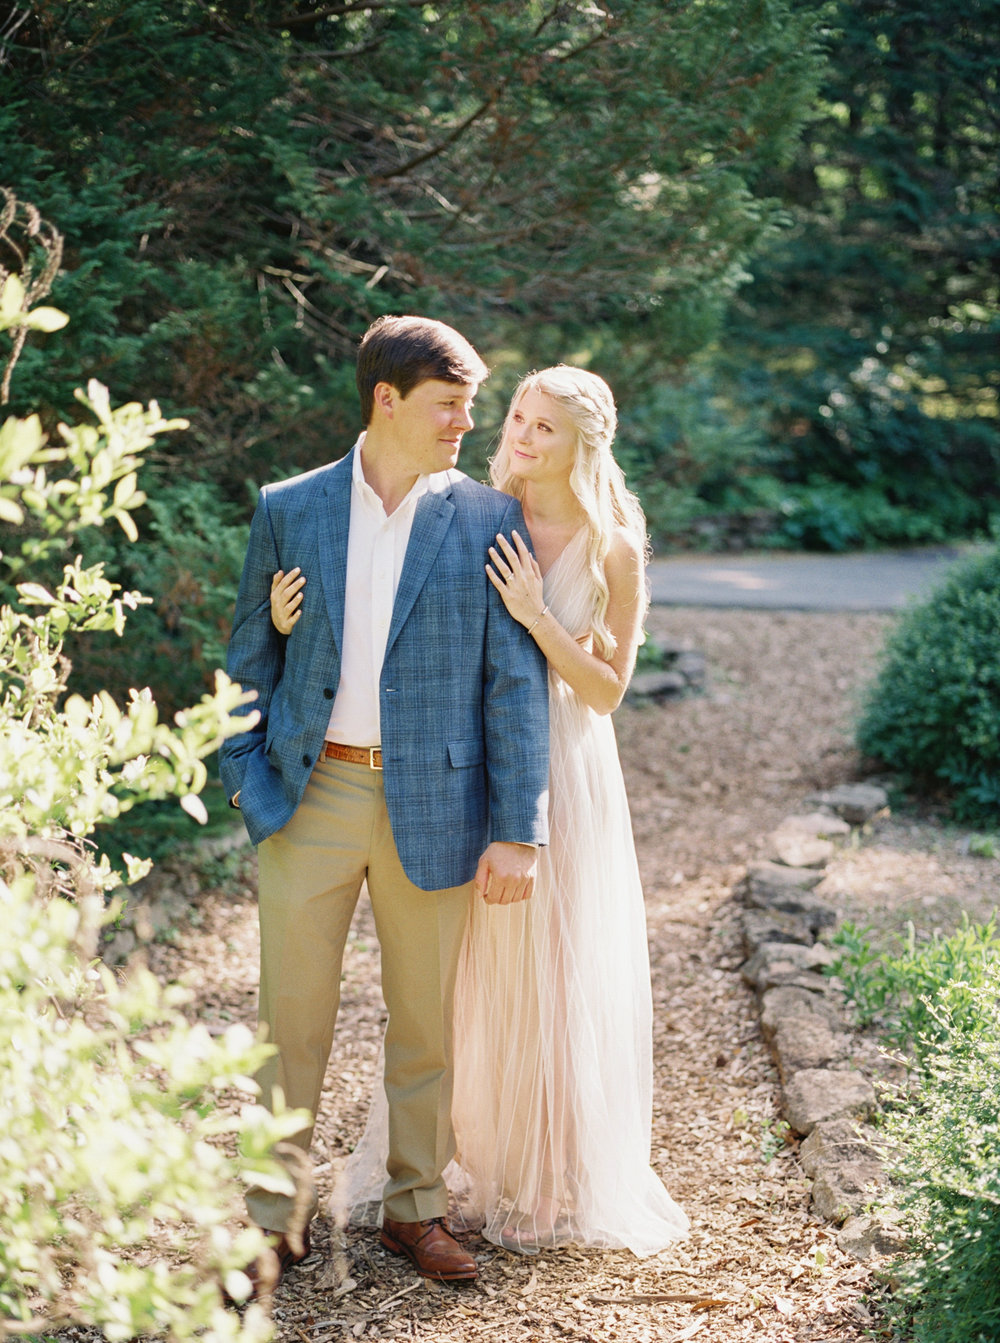 Erin_Johnny_Engagement_Dunaway_Gardens_Georgia_Film_Fallen_Photography-39.JPG